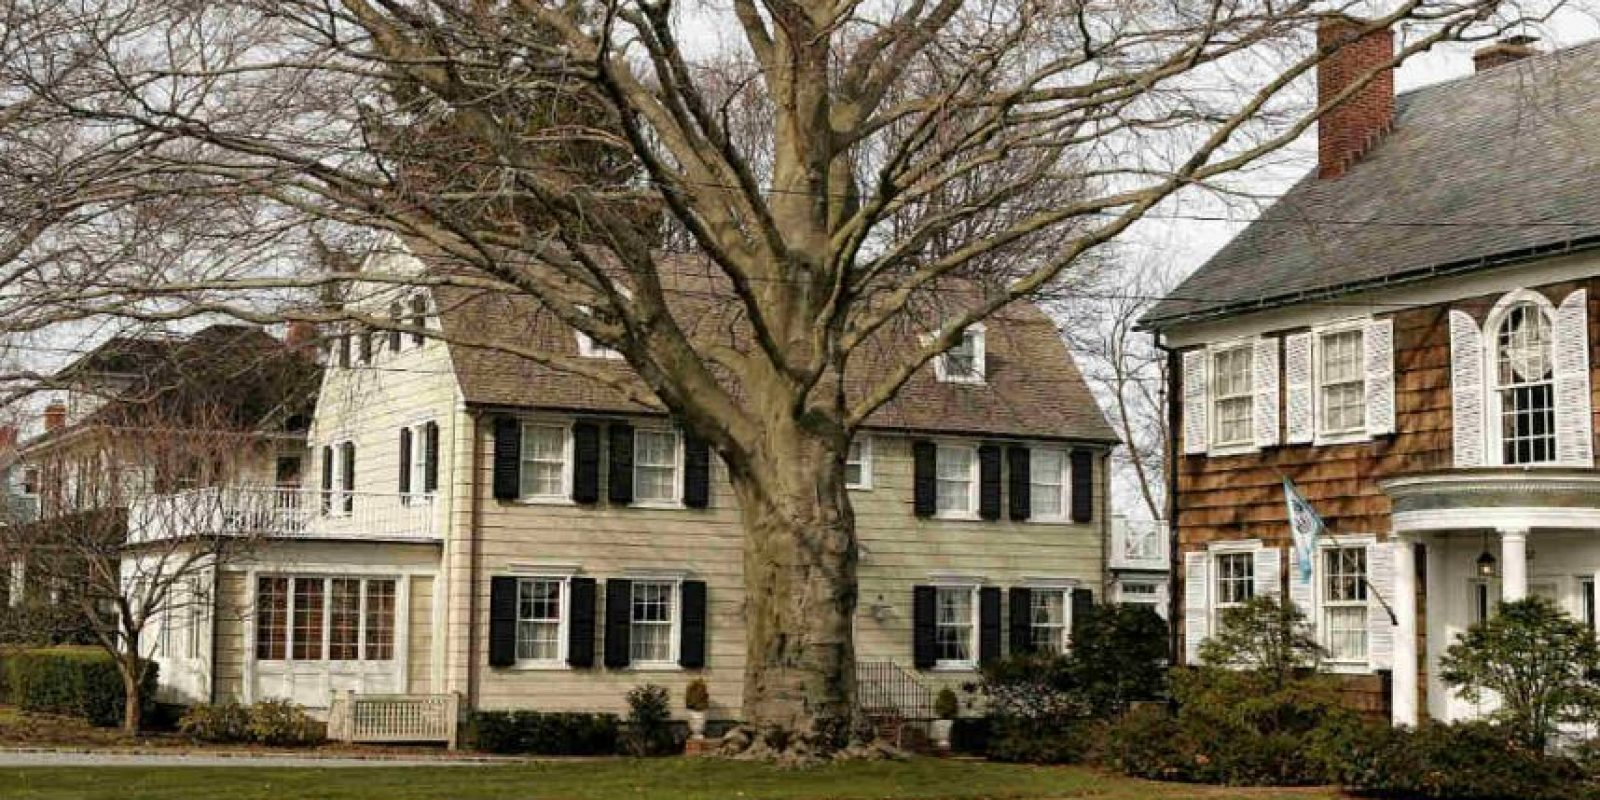 La casa de los horrores de Amityville. Foto: Getty Images